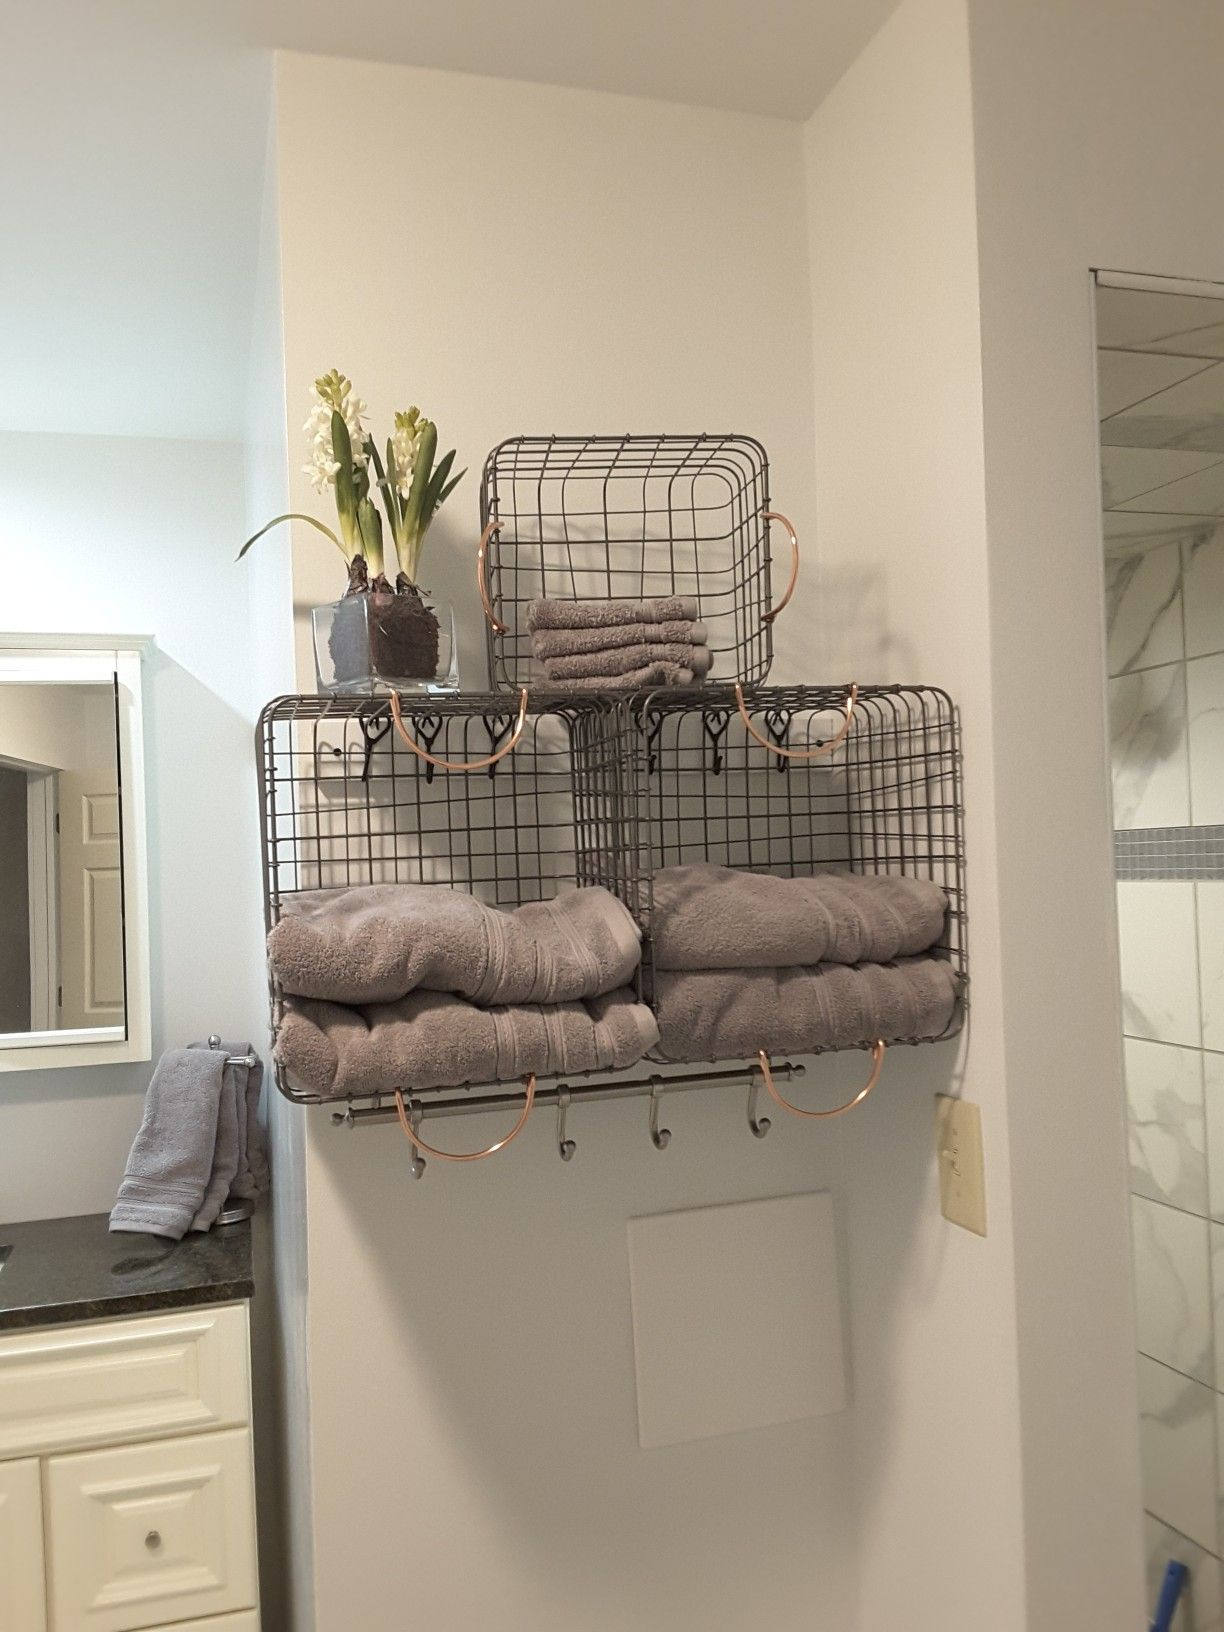 Using Wire Baskets Wall Hooks And Towel Rack Bathroom Furniture Bathroom Layout Plans Furniture